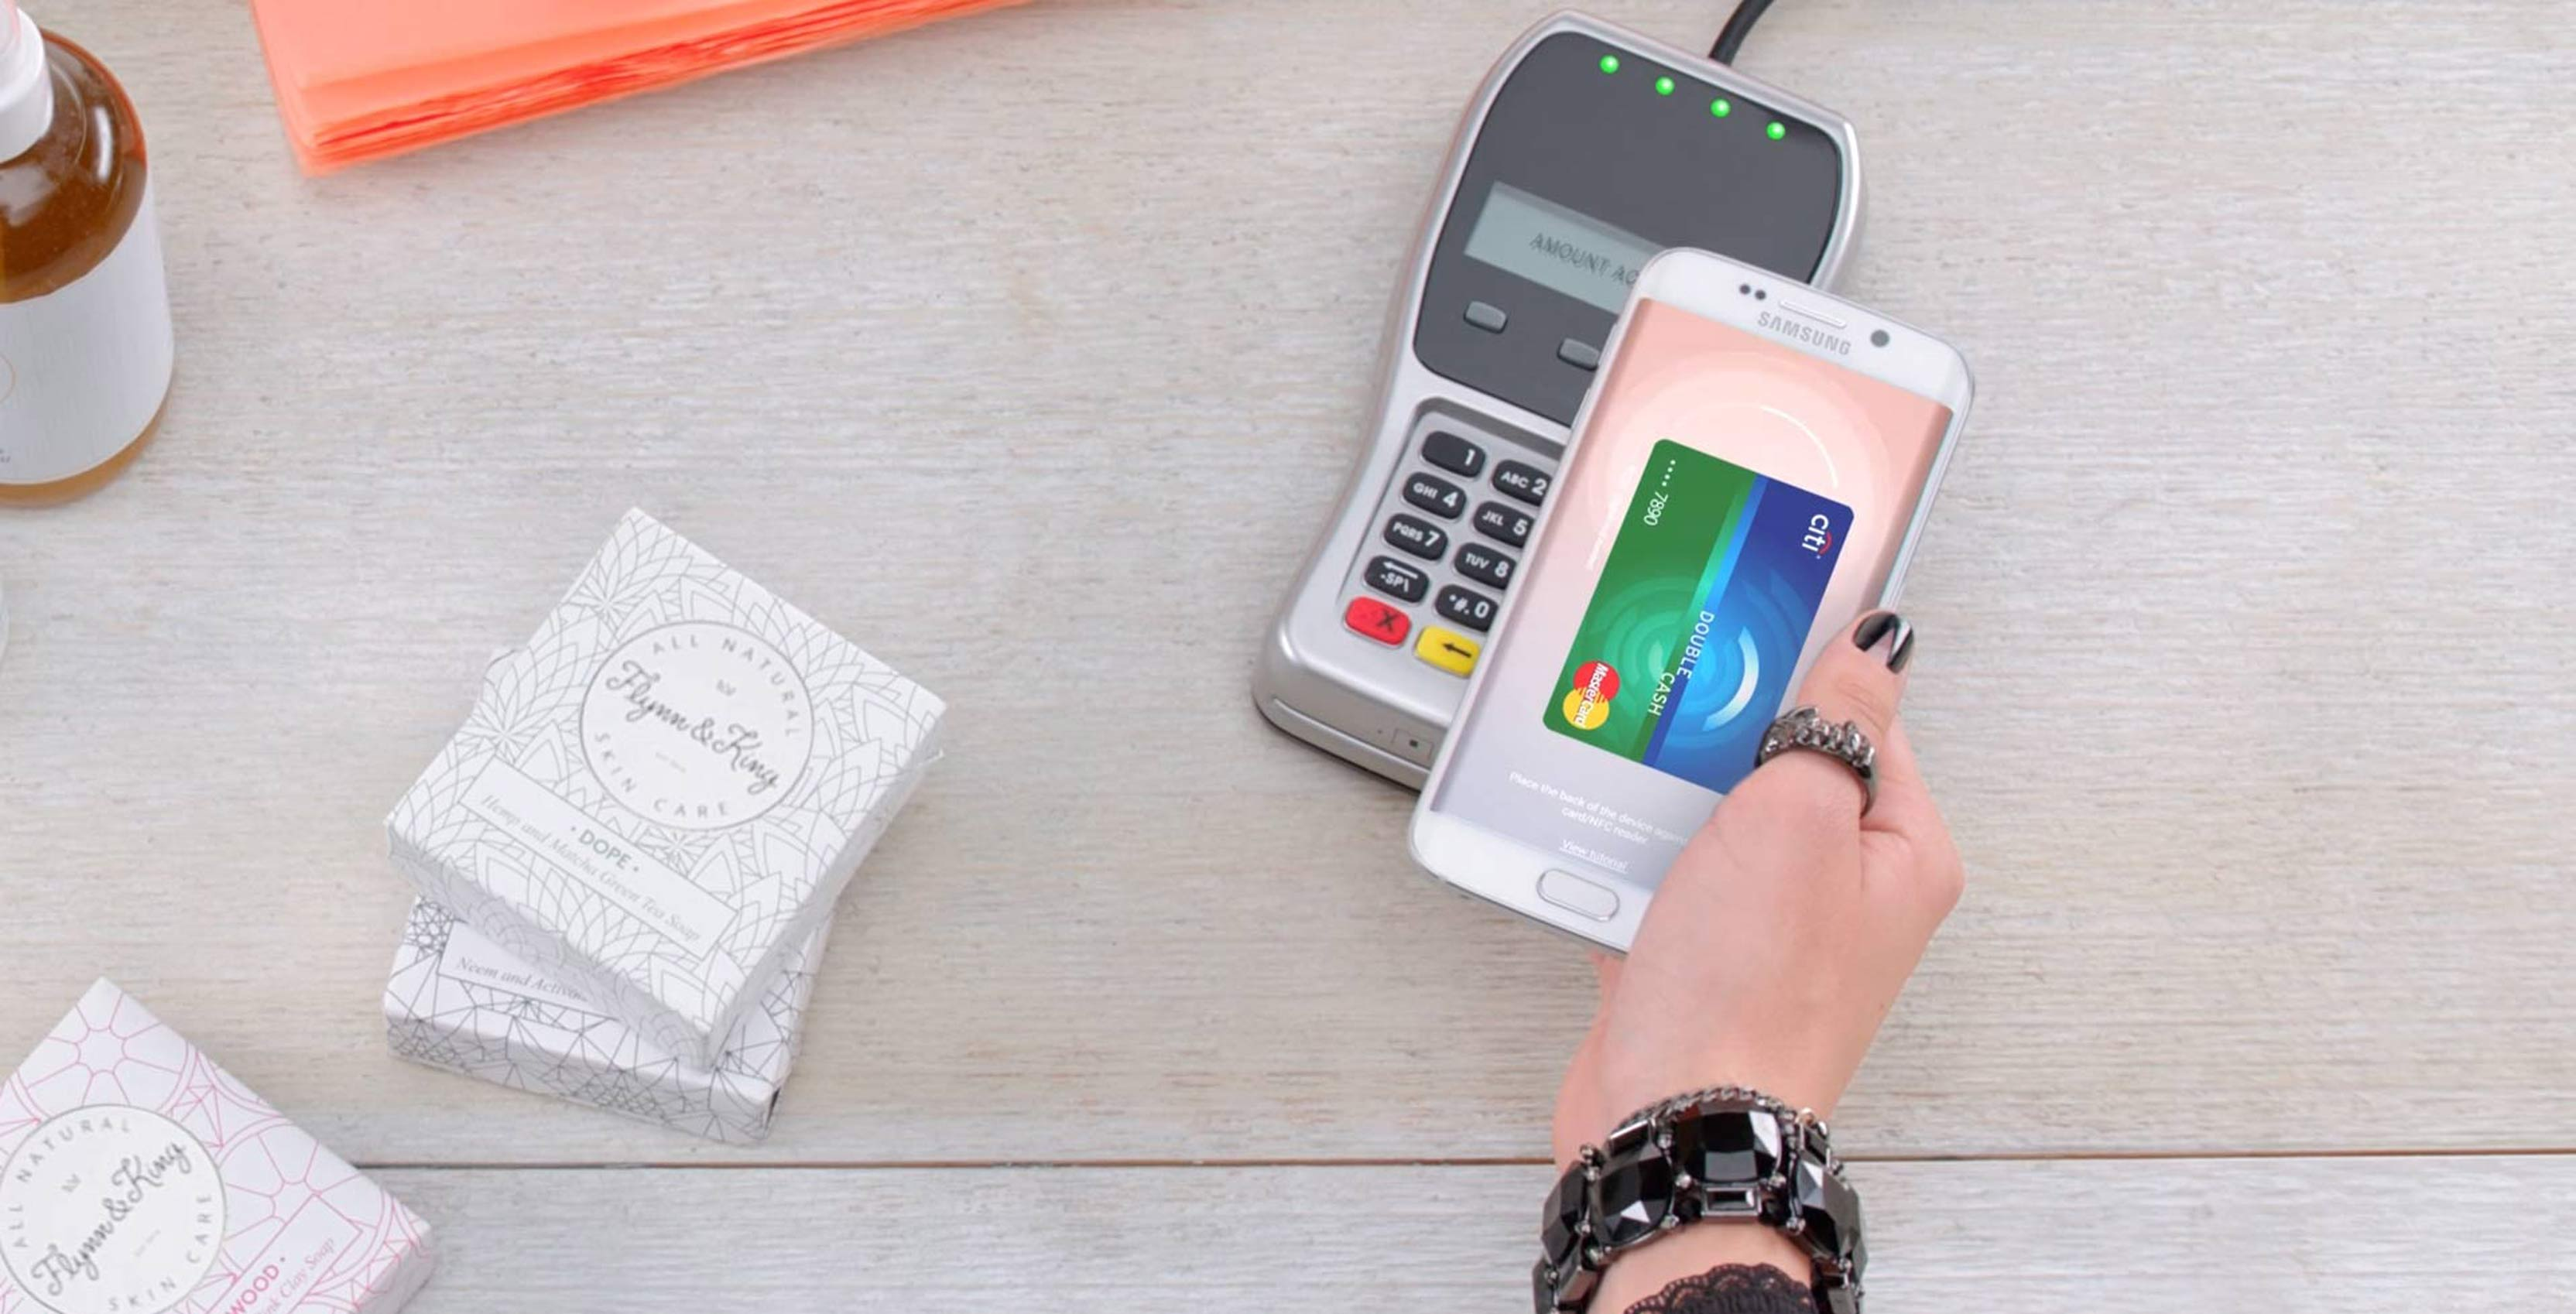 Samsung Pay now works with Scotiabank and ATB Financial, supports